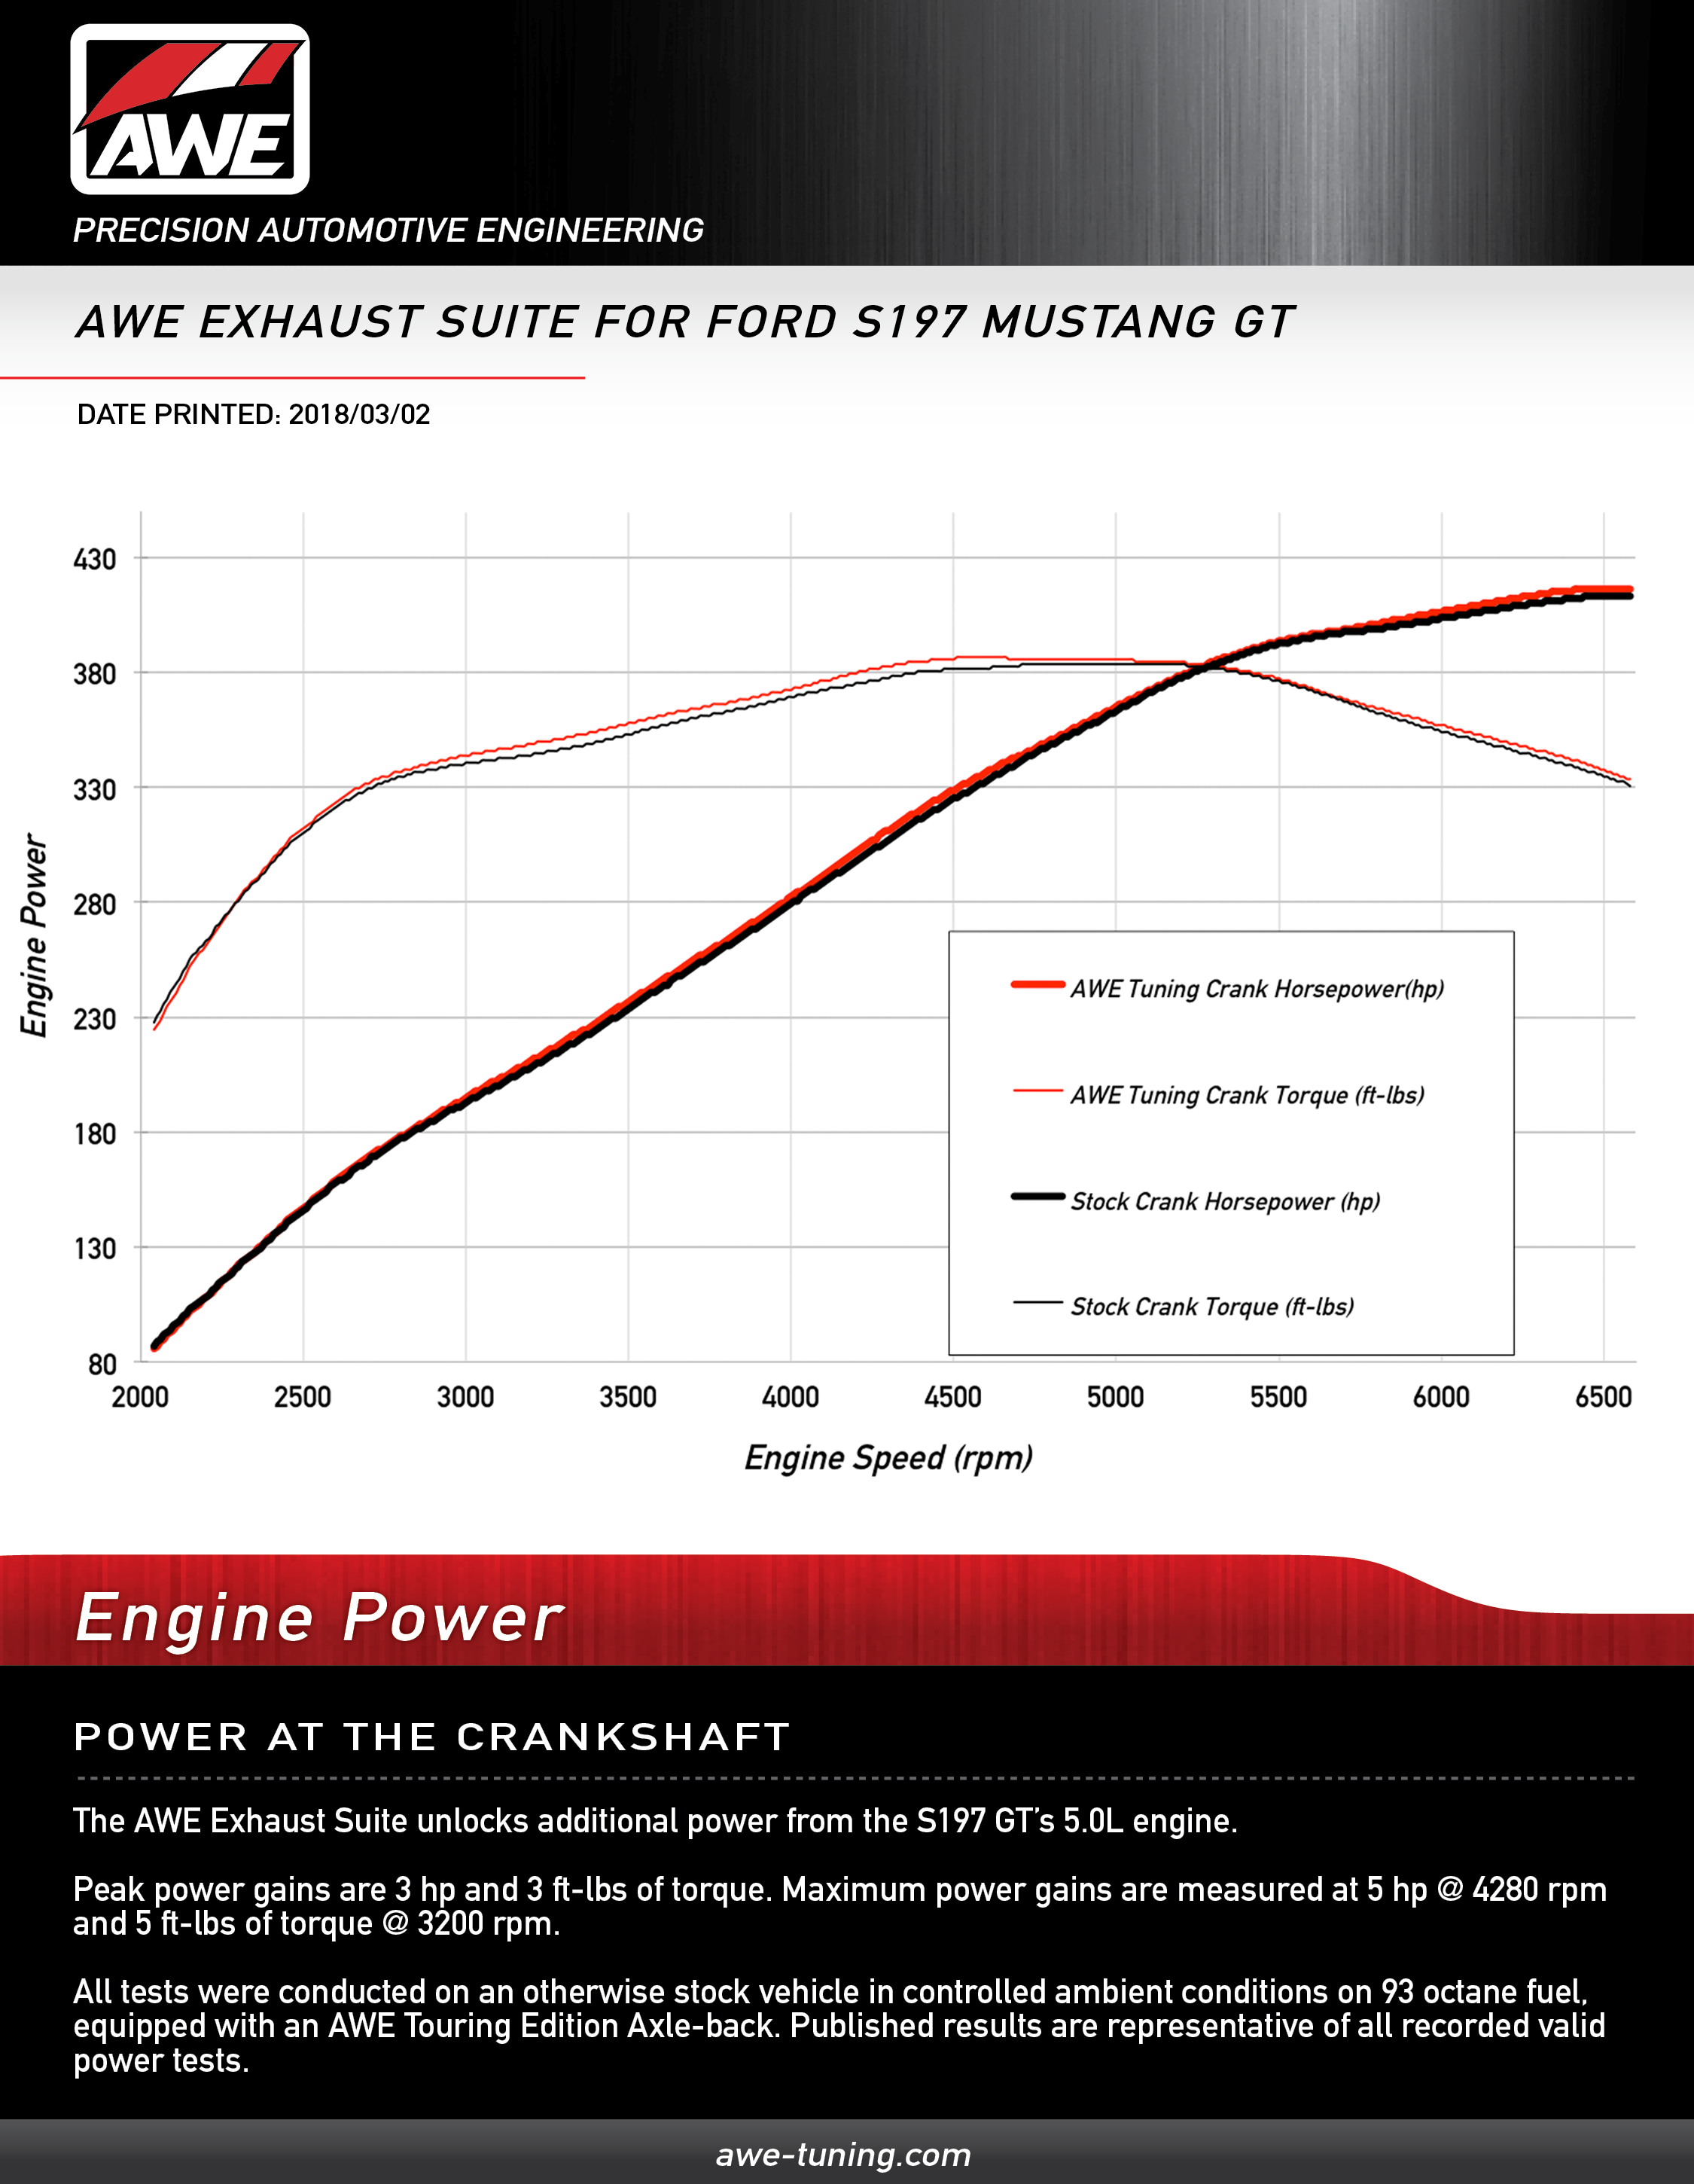 crank horsepower gains for the awe s197 mustang gt axle-back exhaust systems